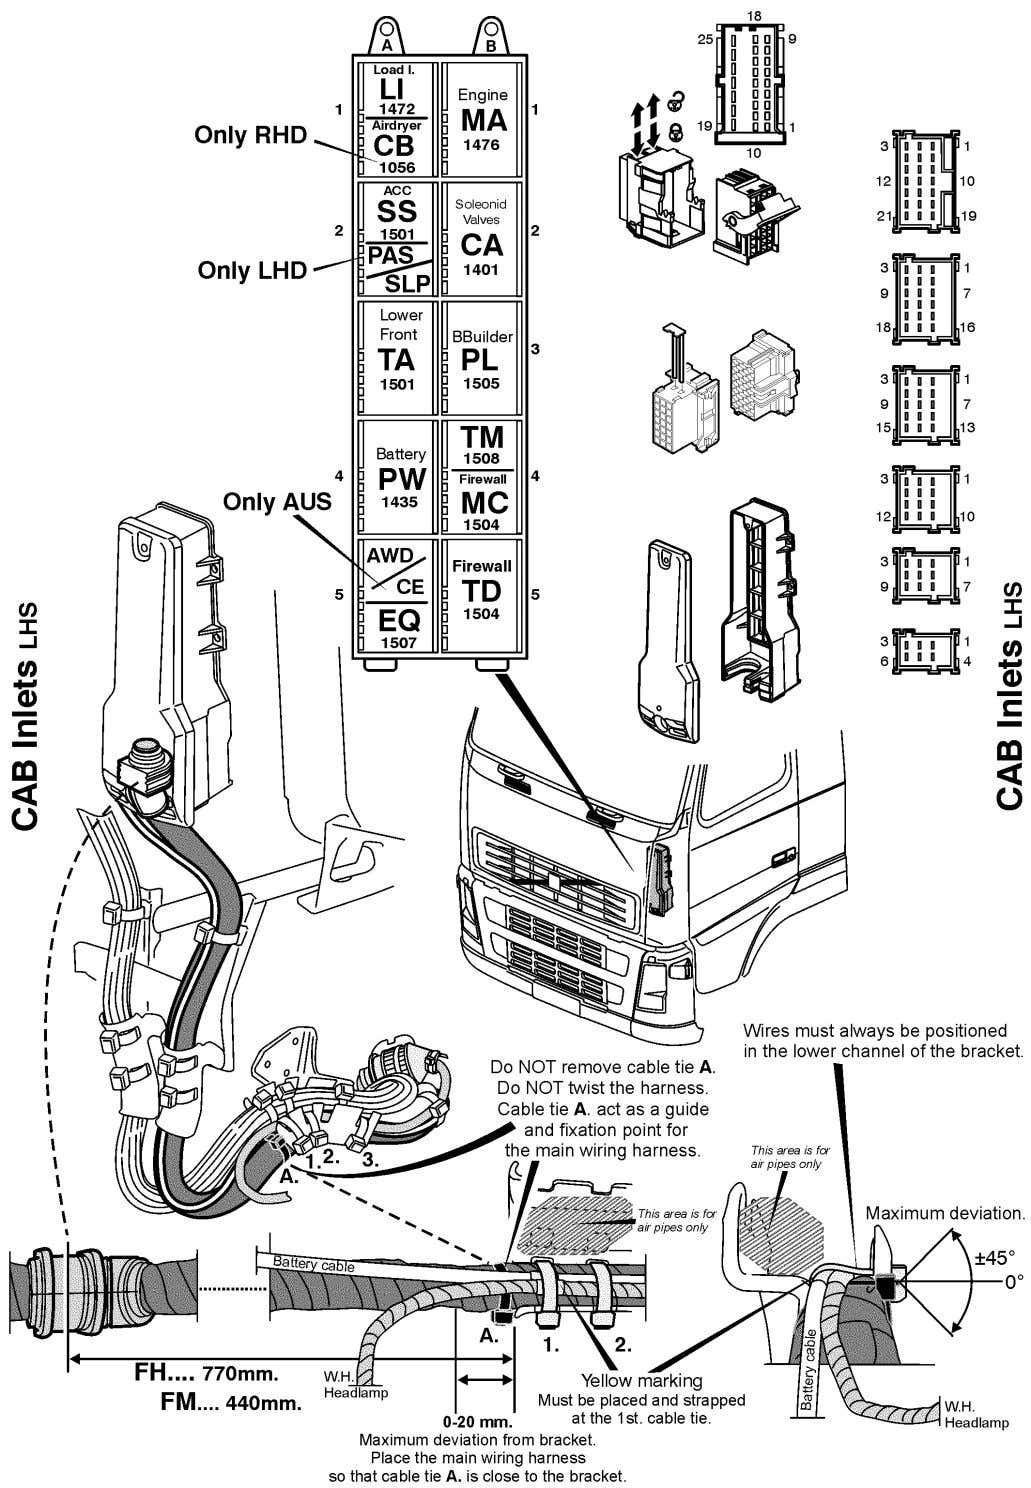 T3060168 Wiring diagram Page 129 (298)